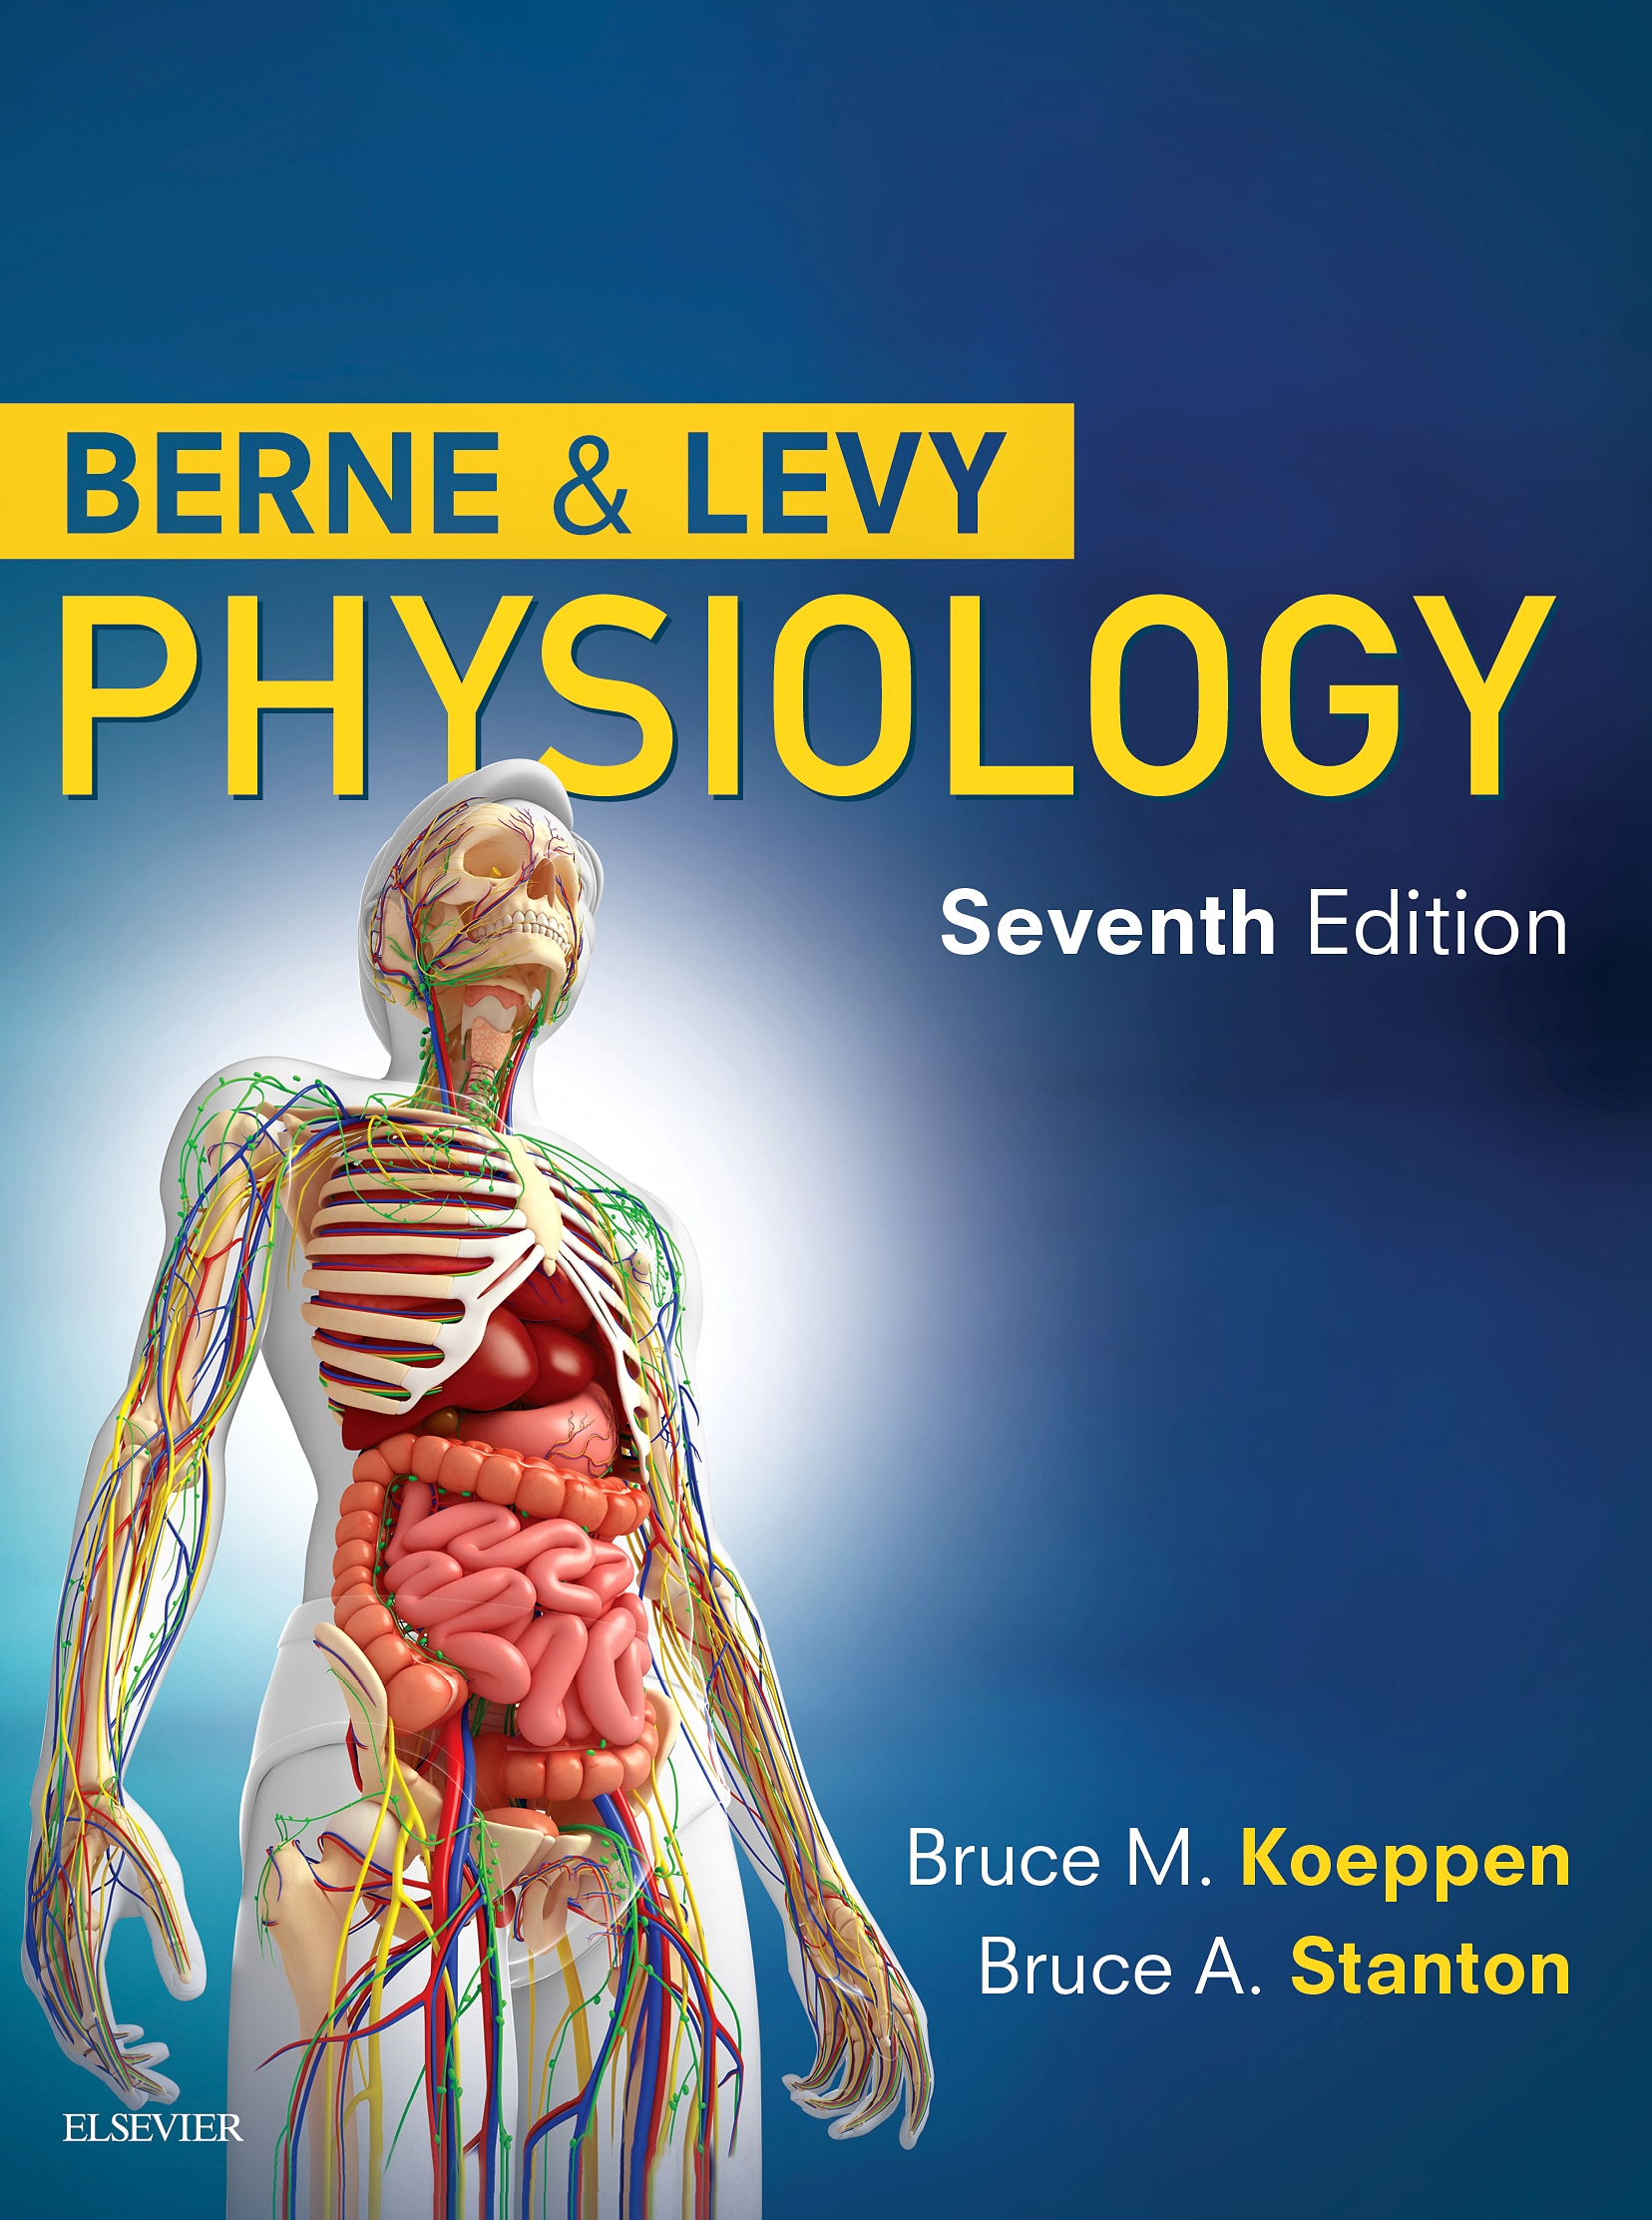 Evolve Resources for Berne & Levy Physiology, 7th Edition